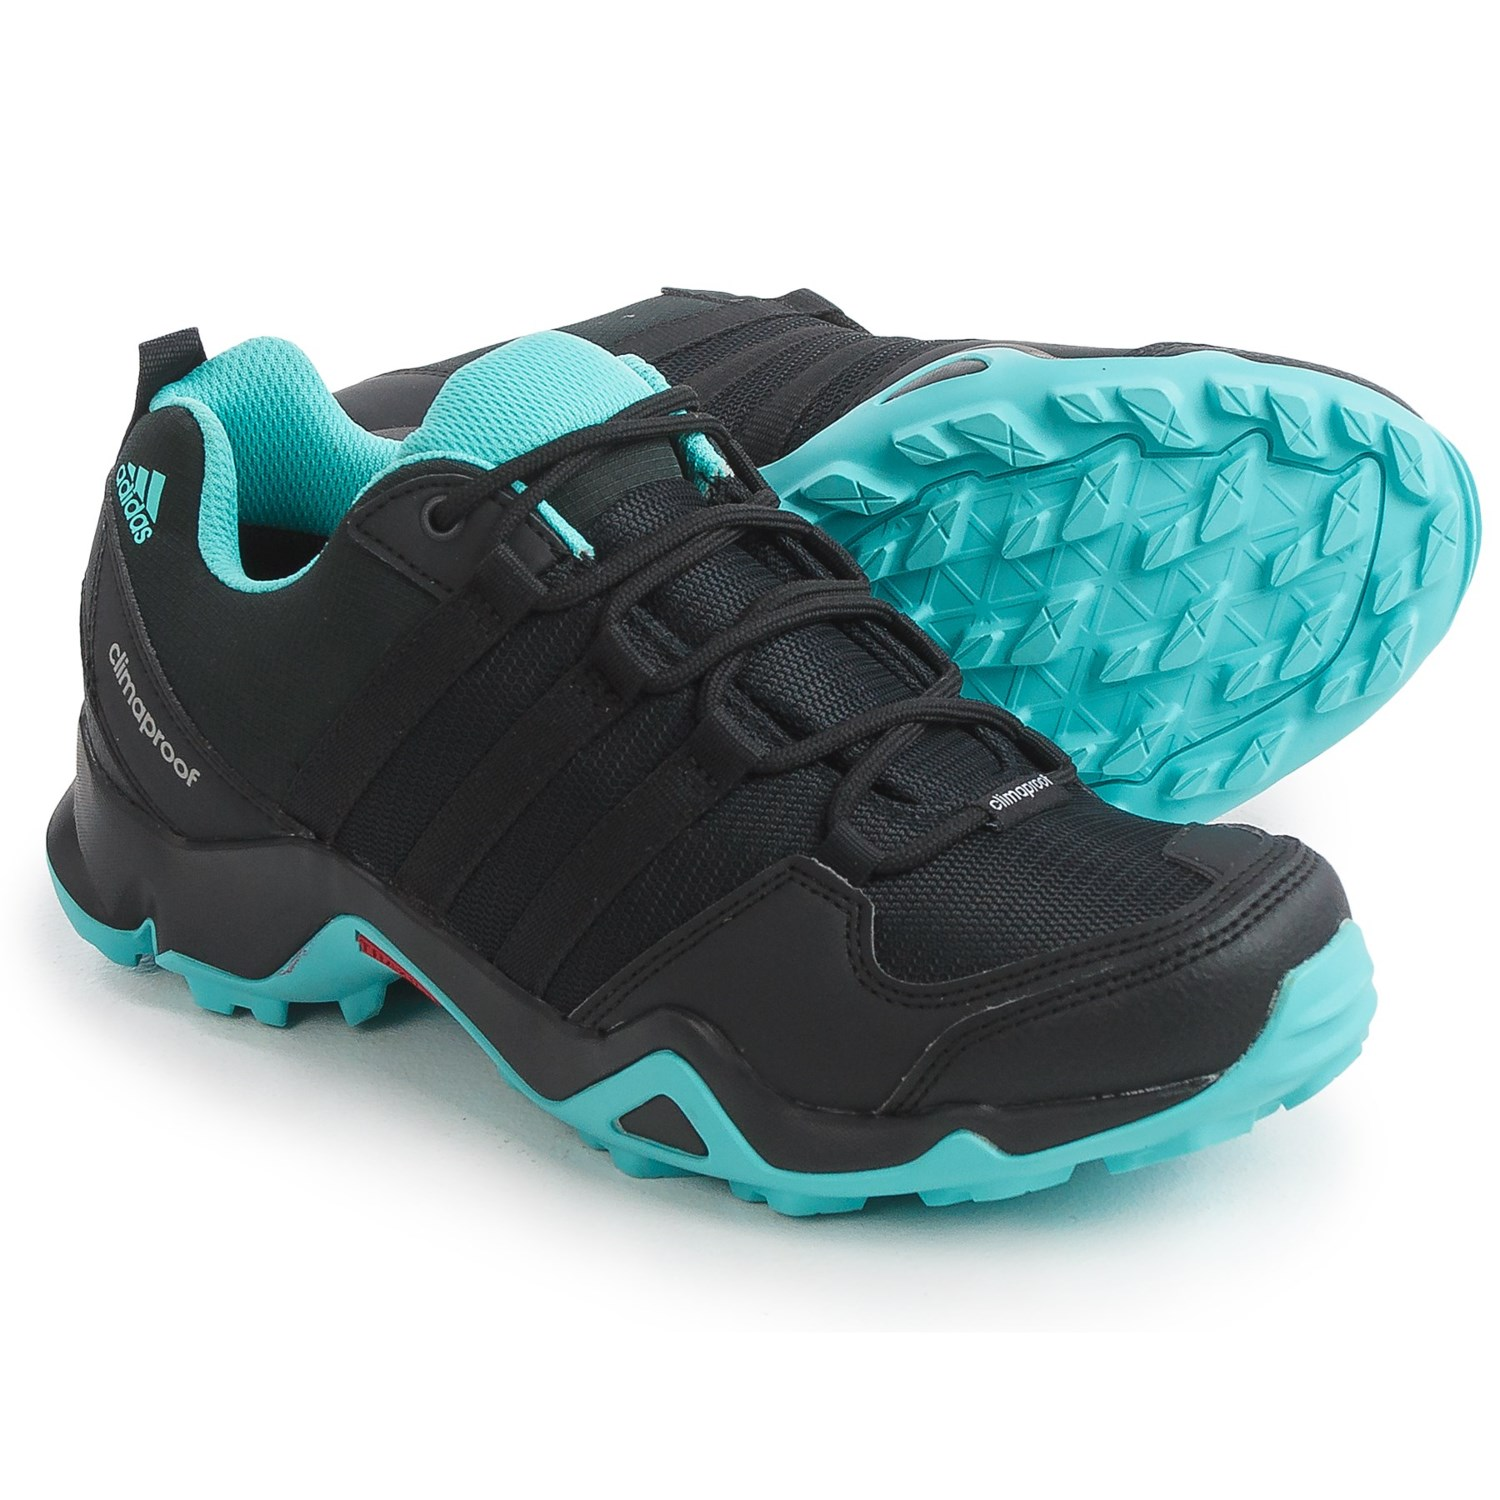 Adidas Outdoor Ax Climaproof Men S Waterproof Hiking Shoes